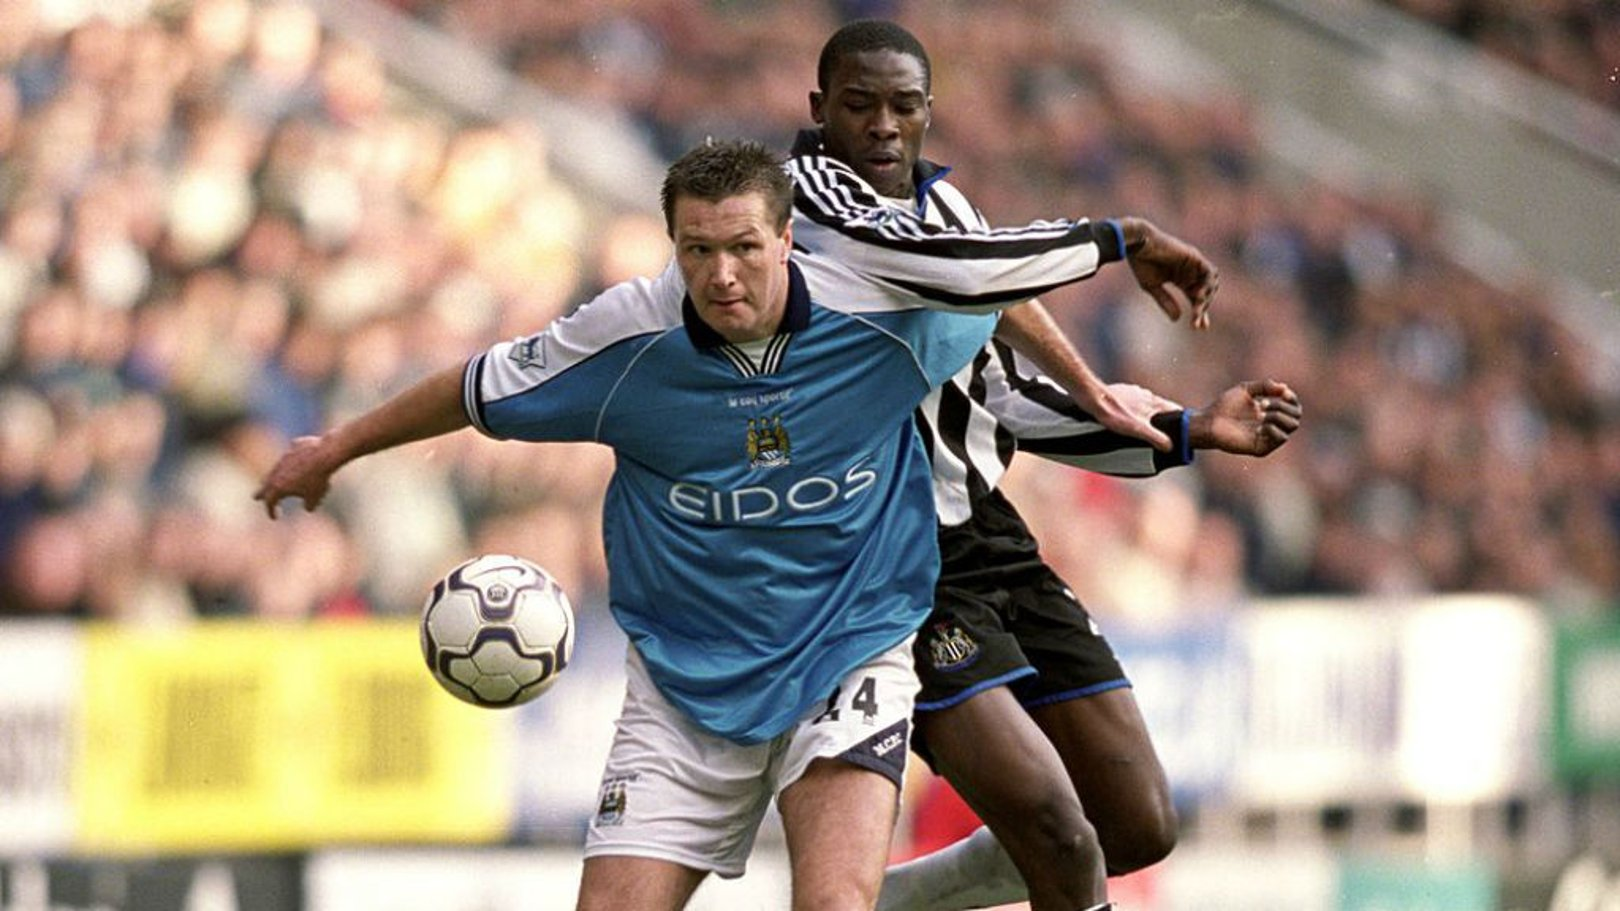 Steve Howey: Playing for City was special